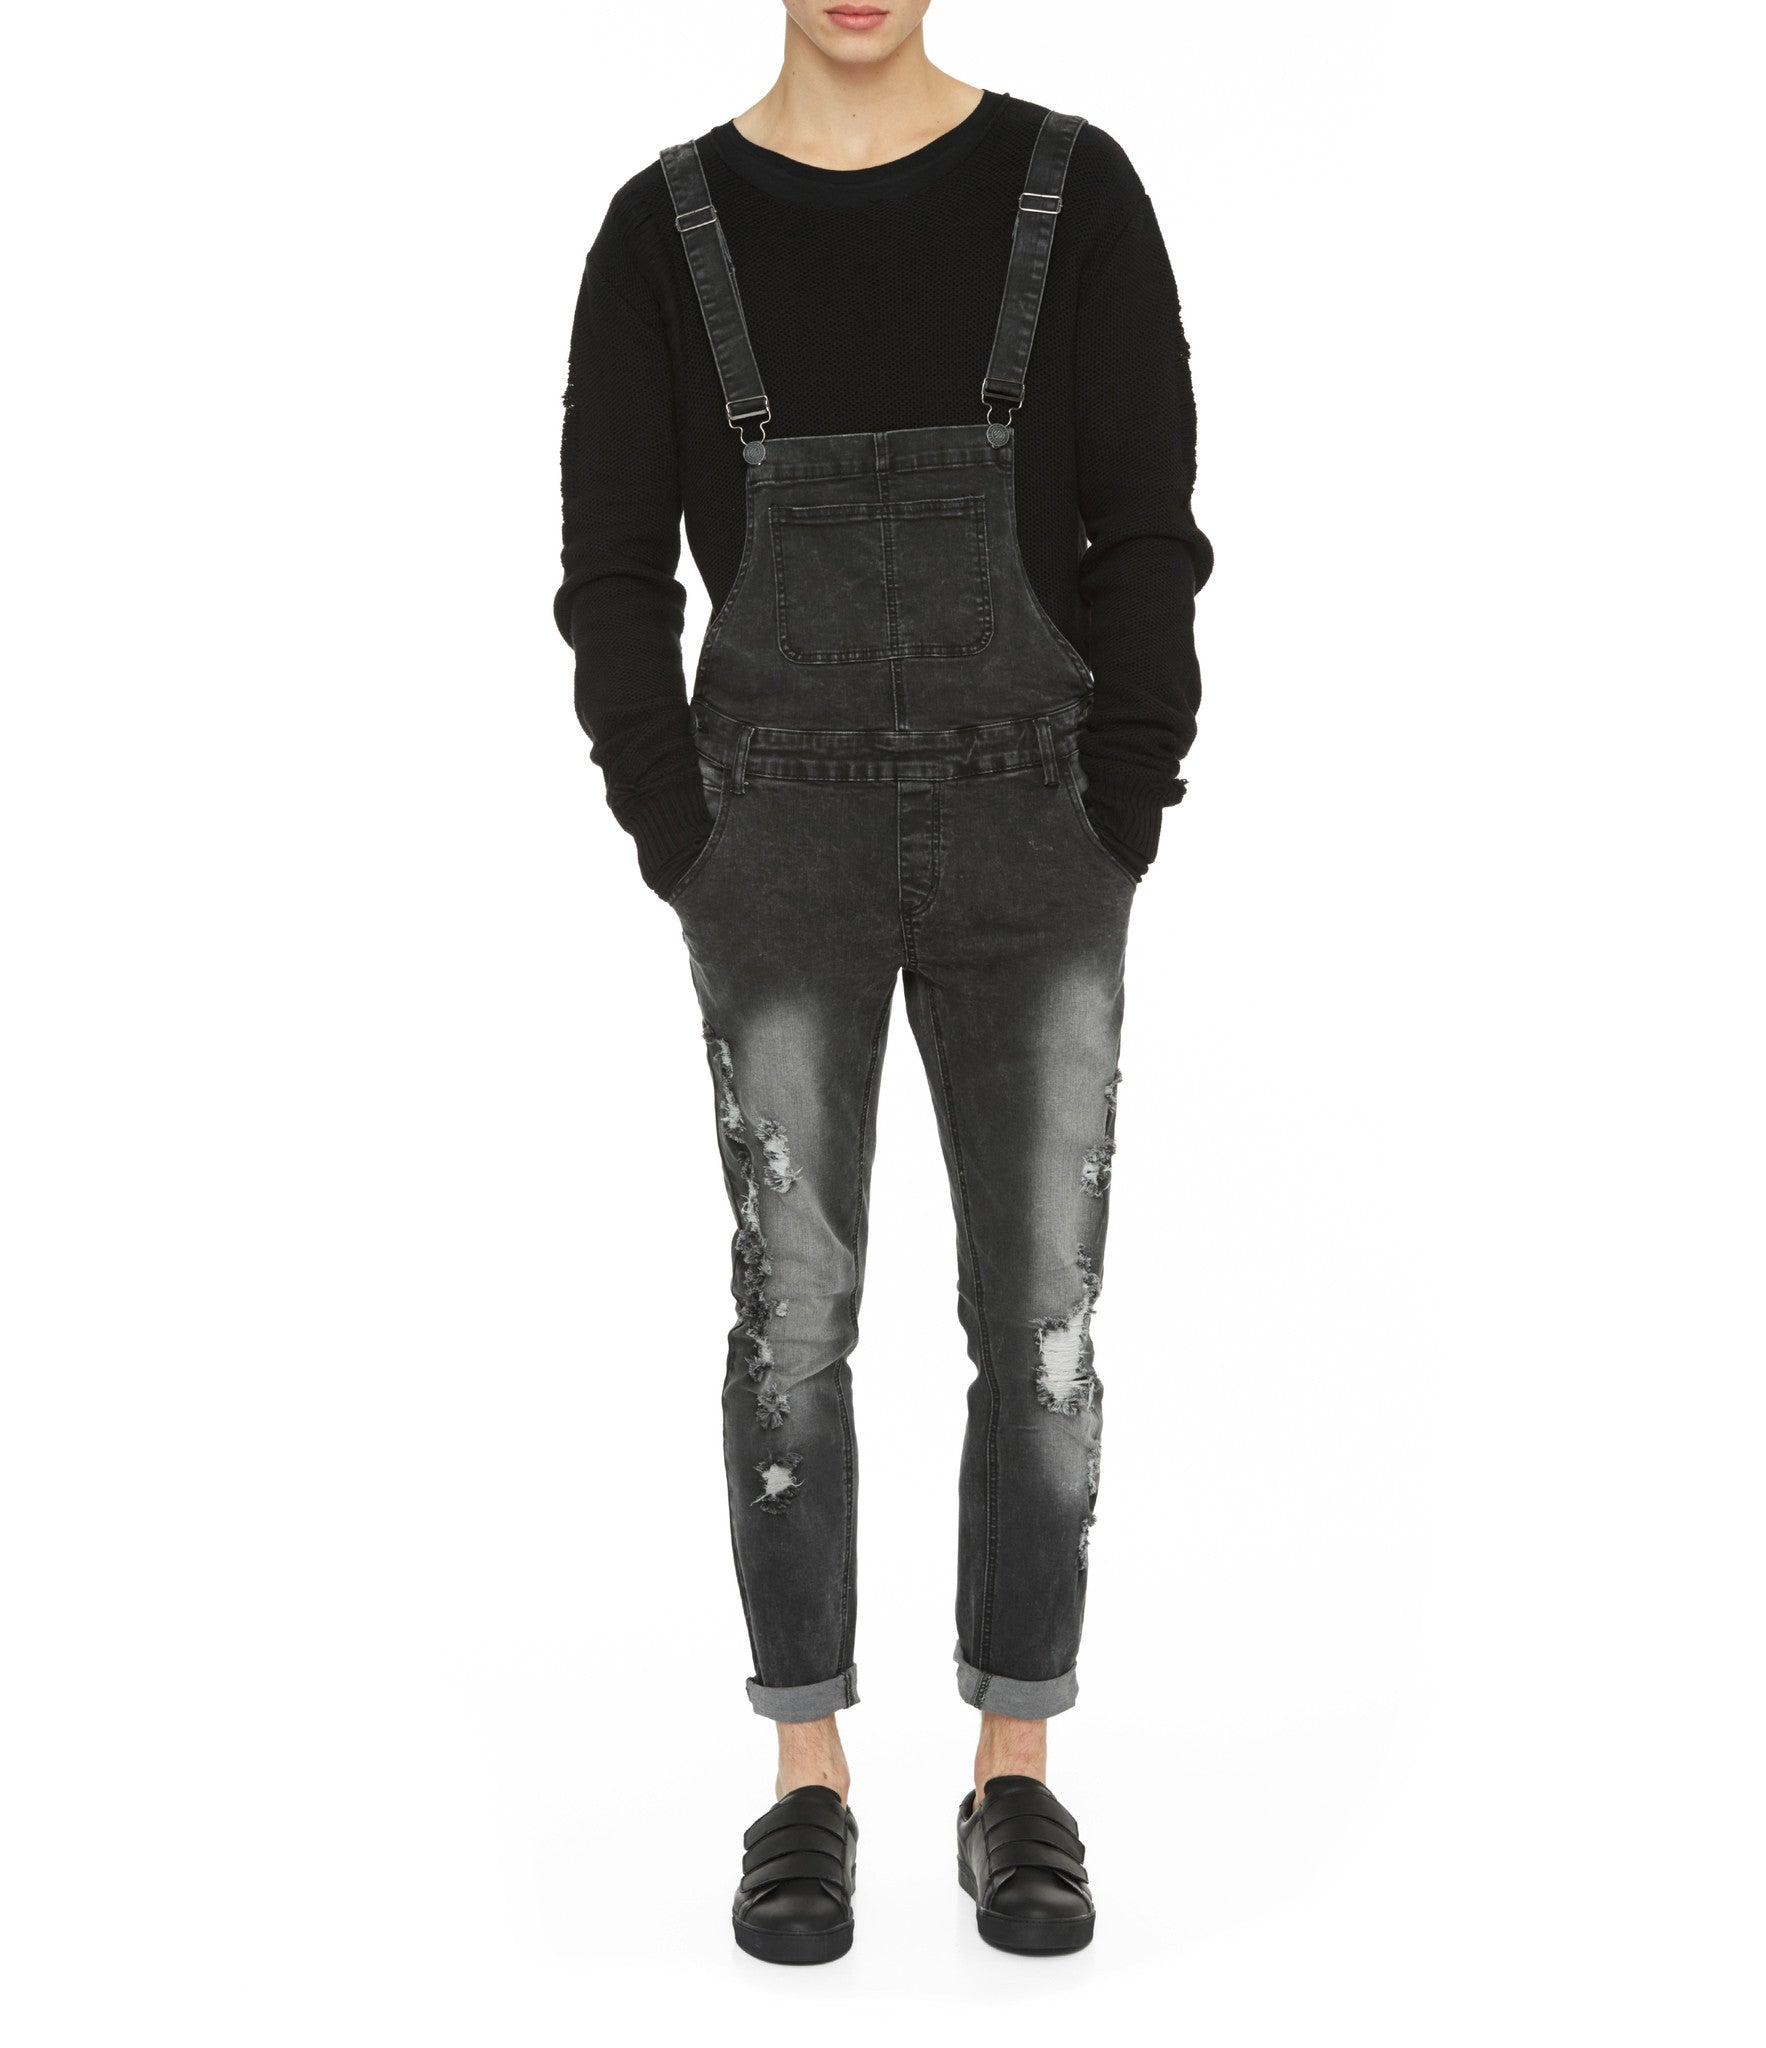 JN181 Distressed Stone Wash Dungaree Denim - Black - underated london - underatedco - 8